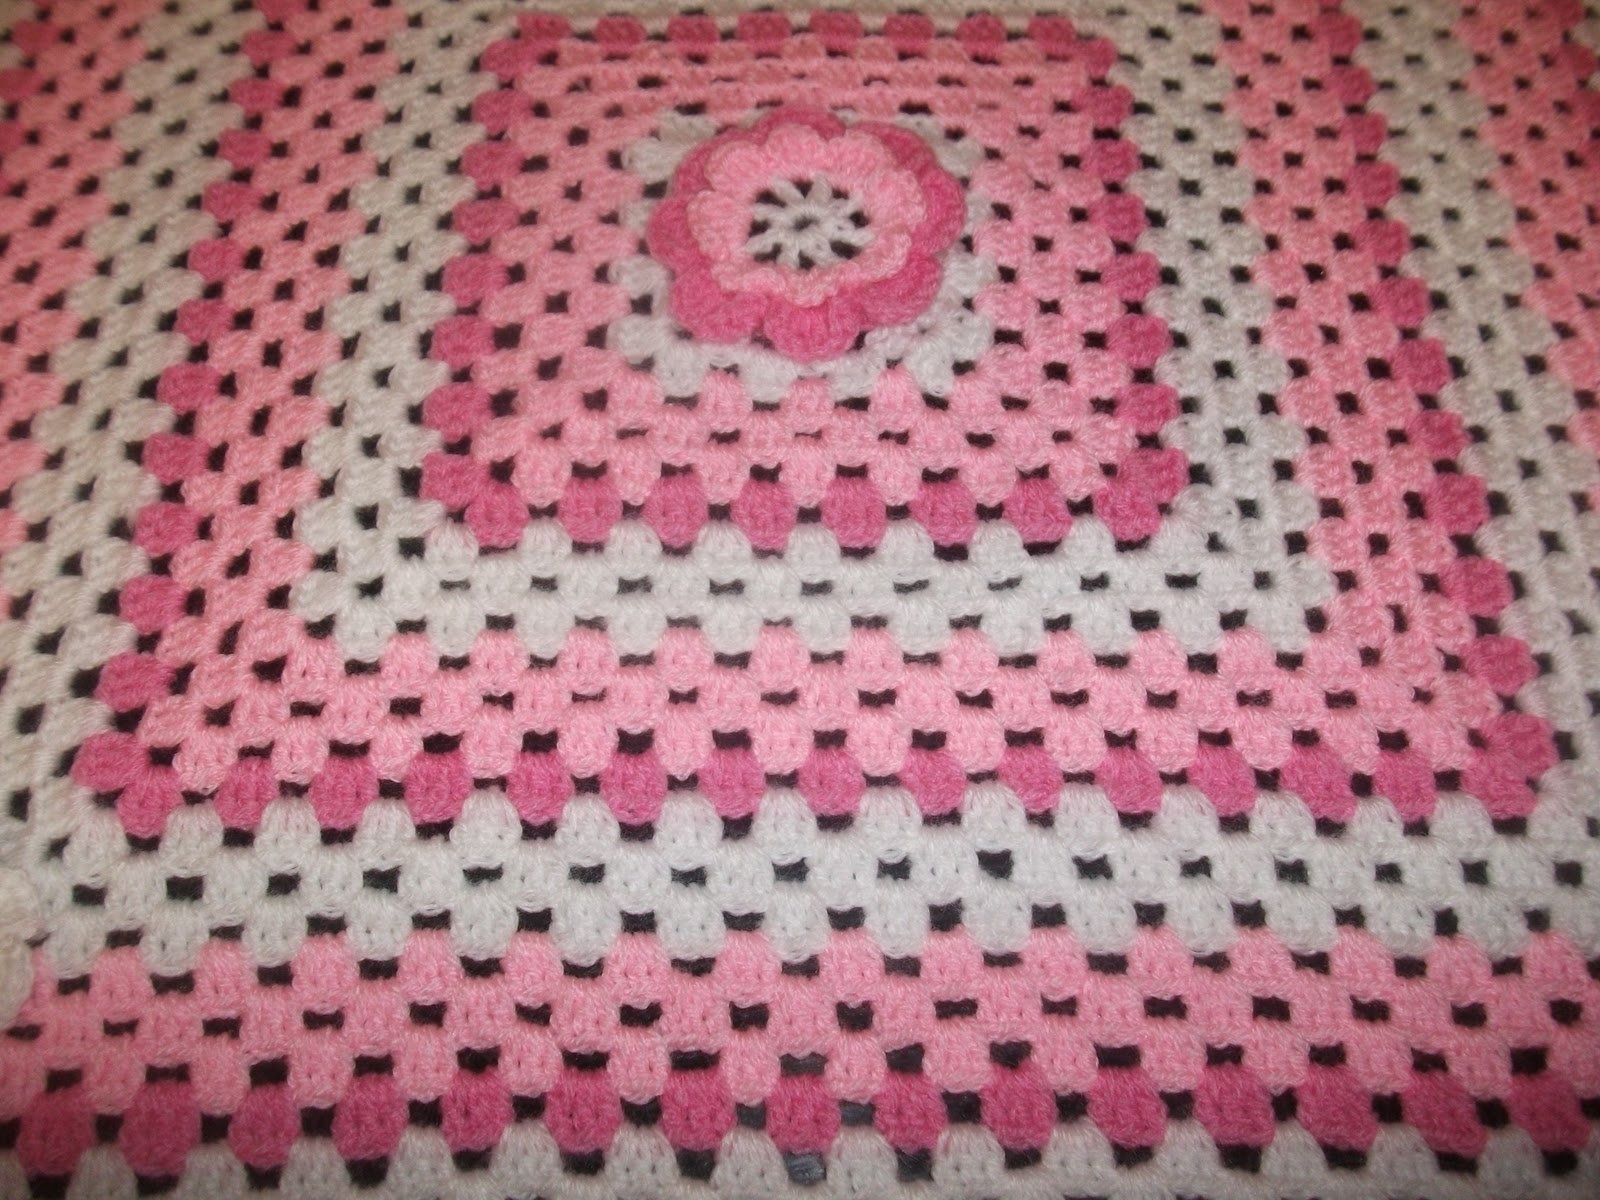 Crochet A Baby Blanket : Helens Colourful Crochet Blankets: New baby girl pink crochet blanket